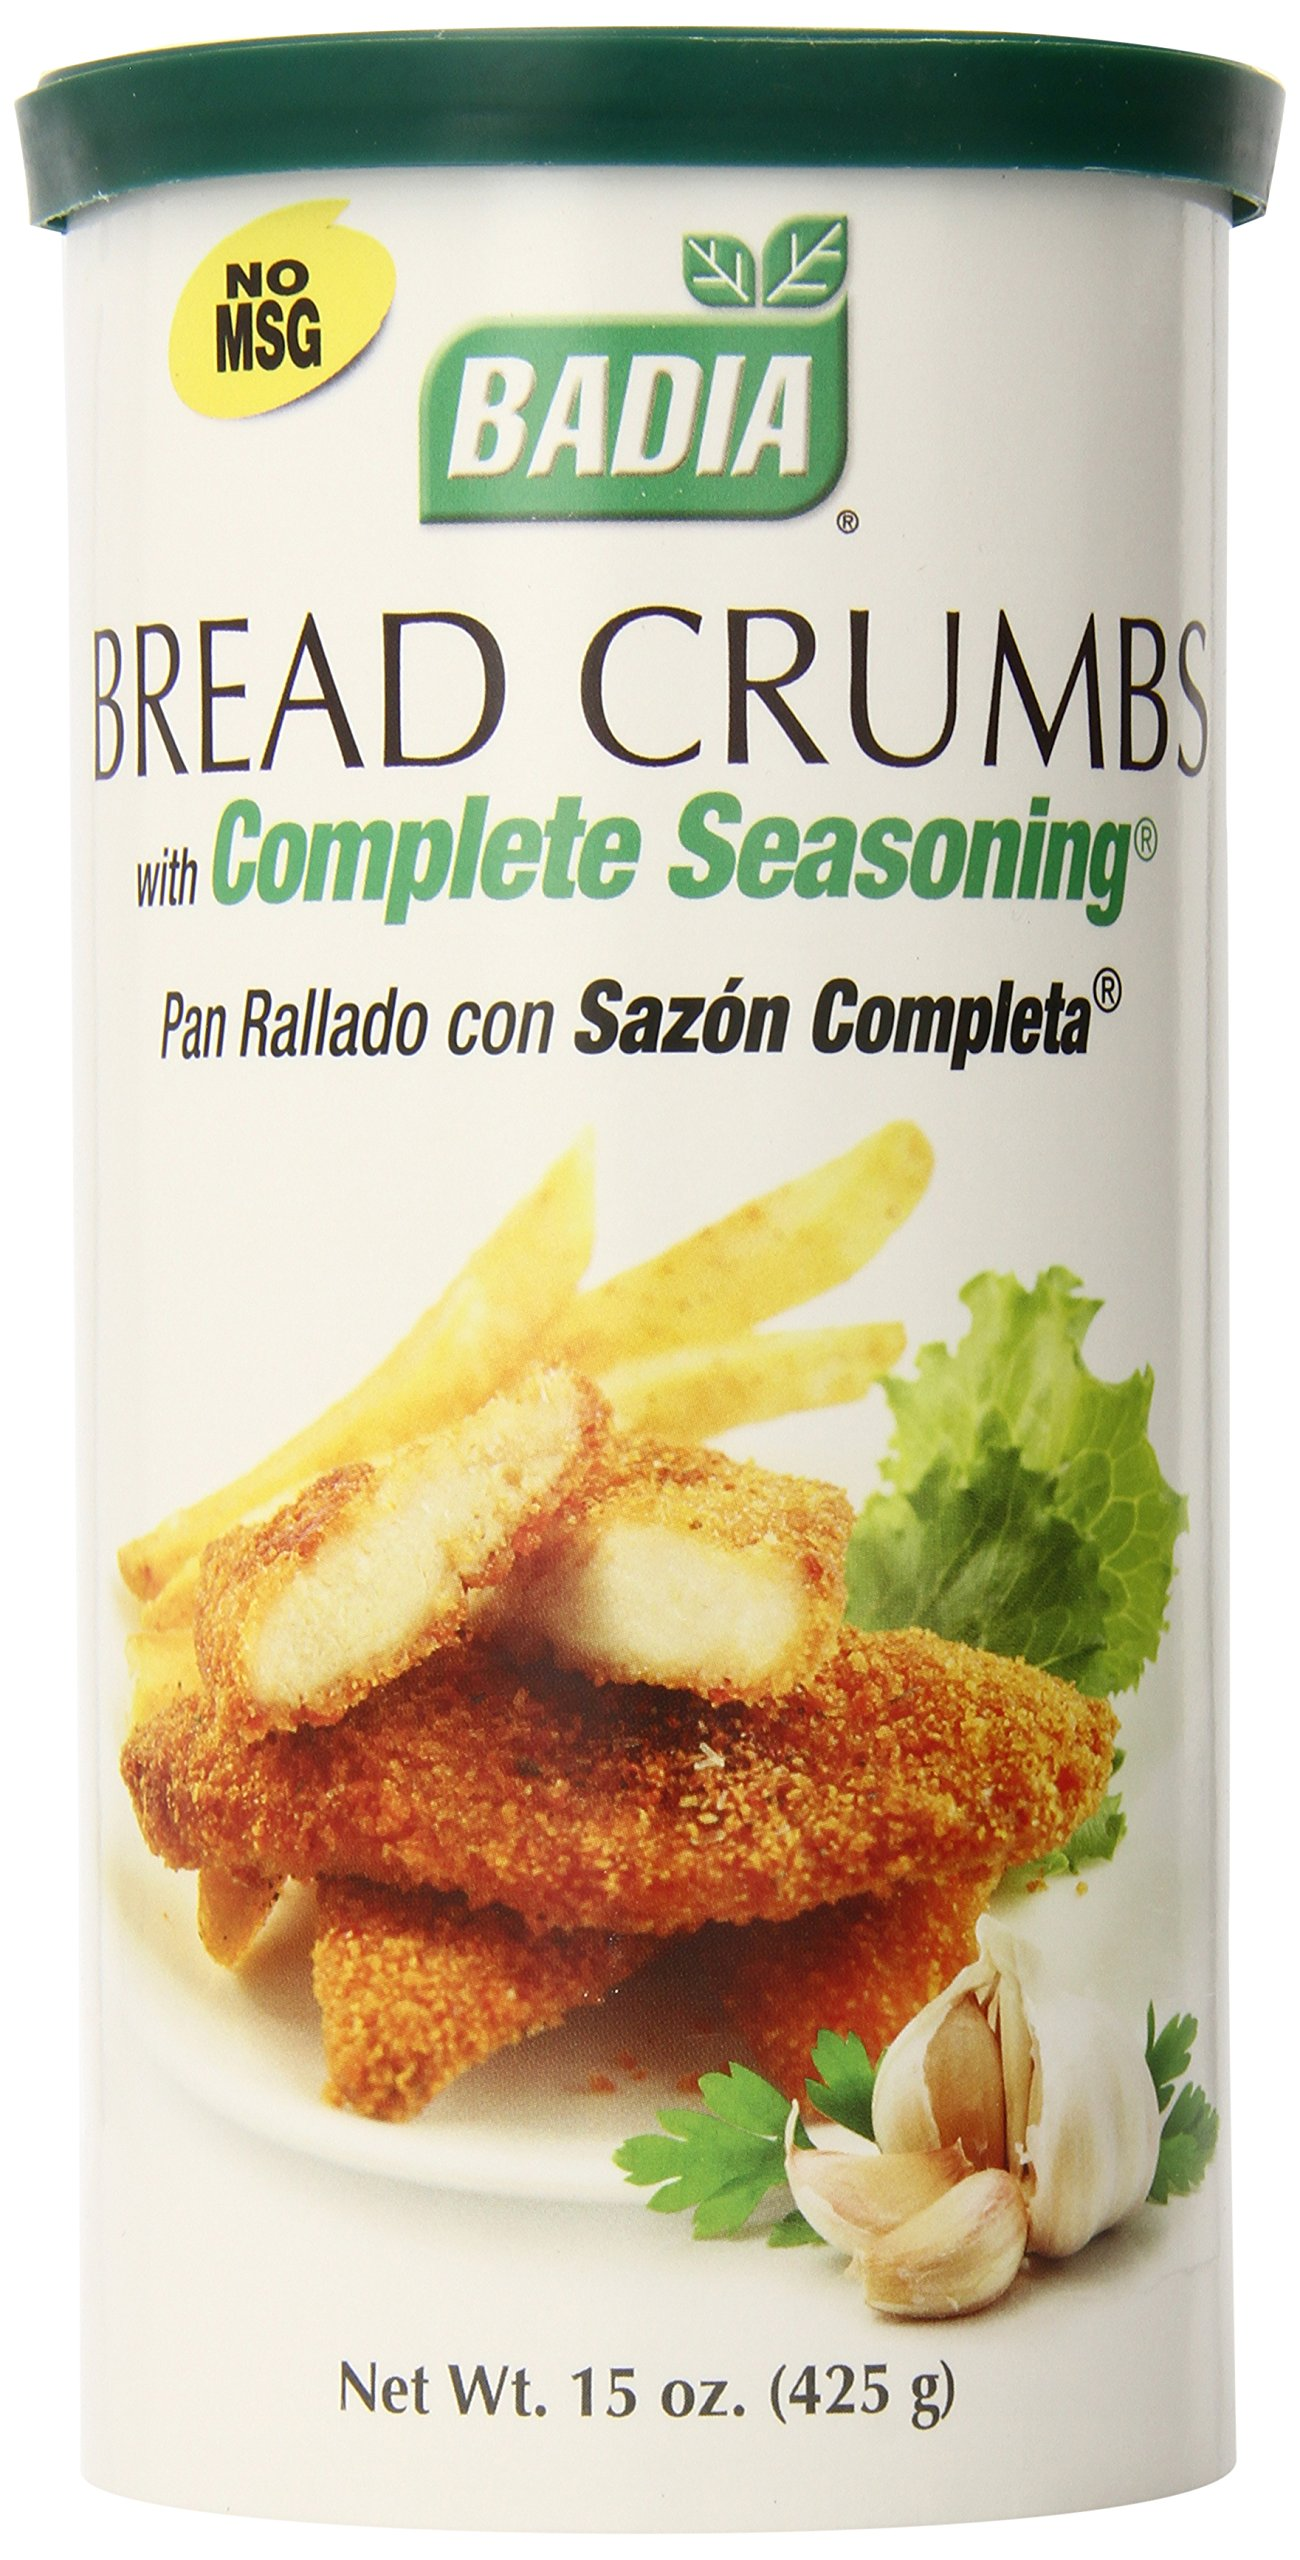 Badia Bread Crumbs with Complete Seasoning, 15 Ounce (Pack of 12)